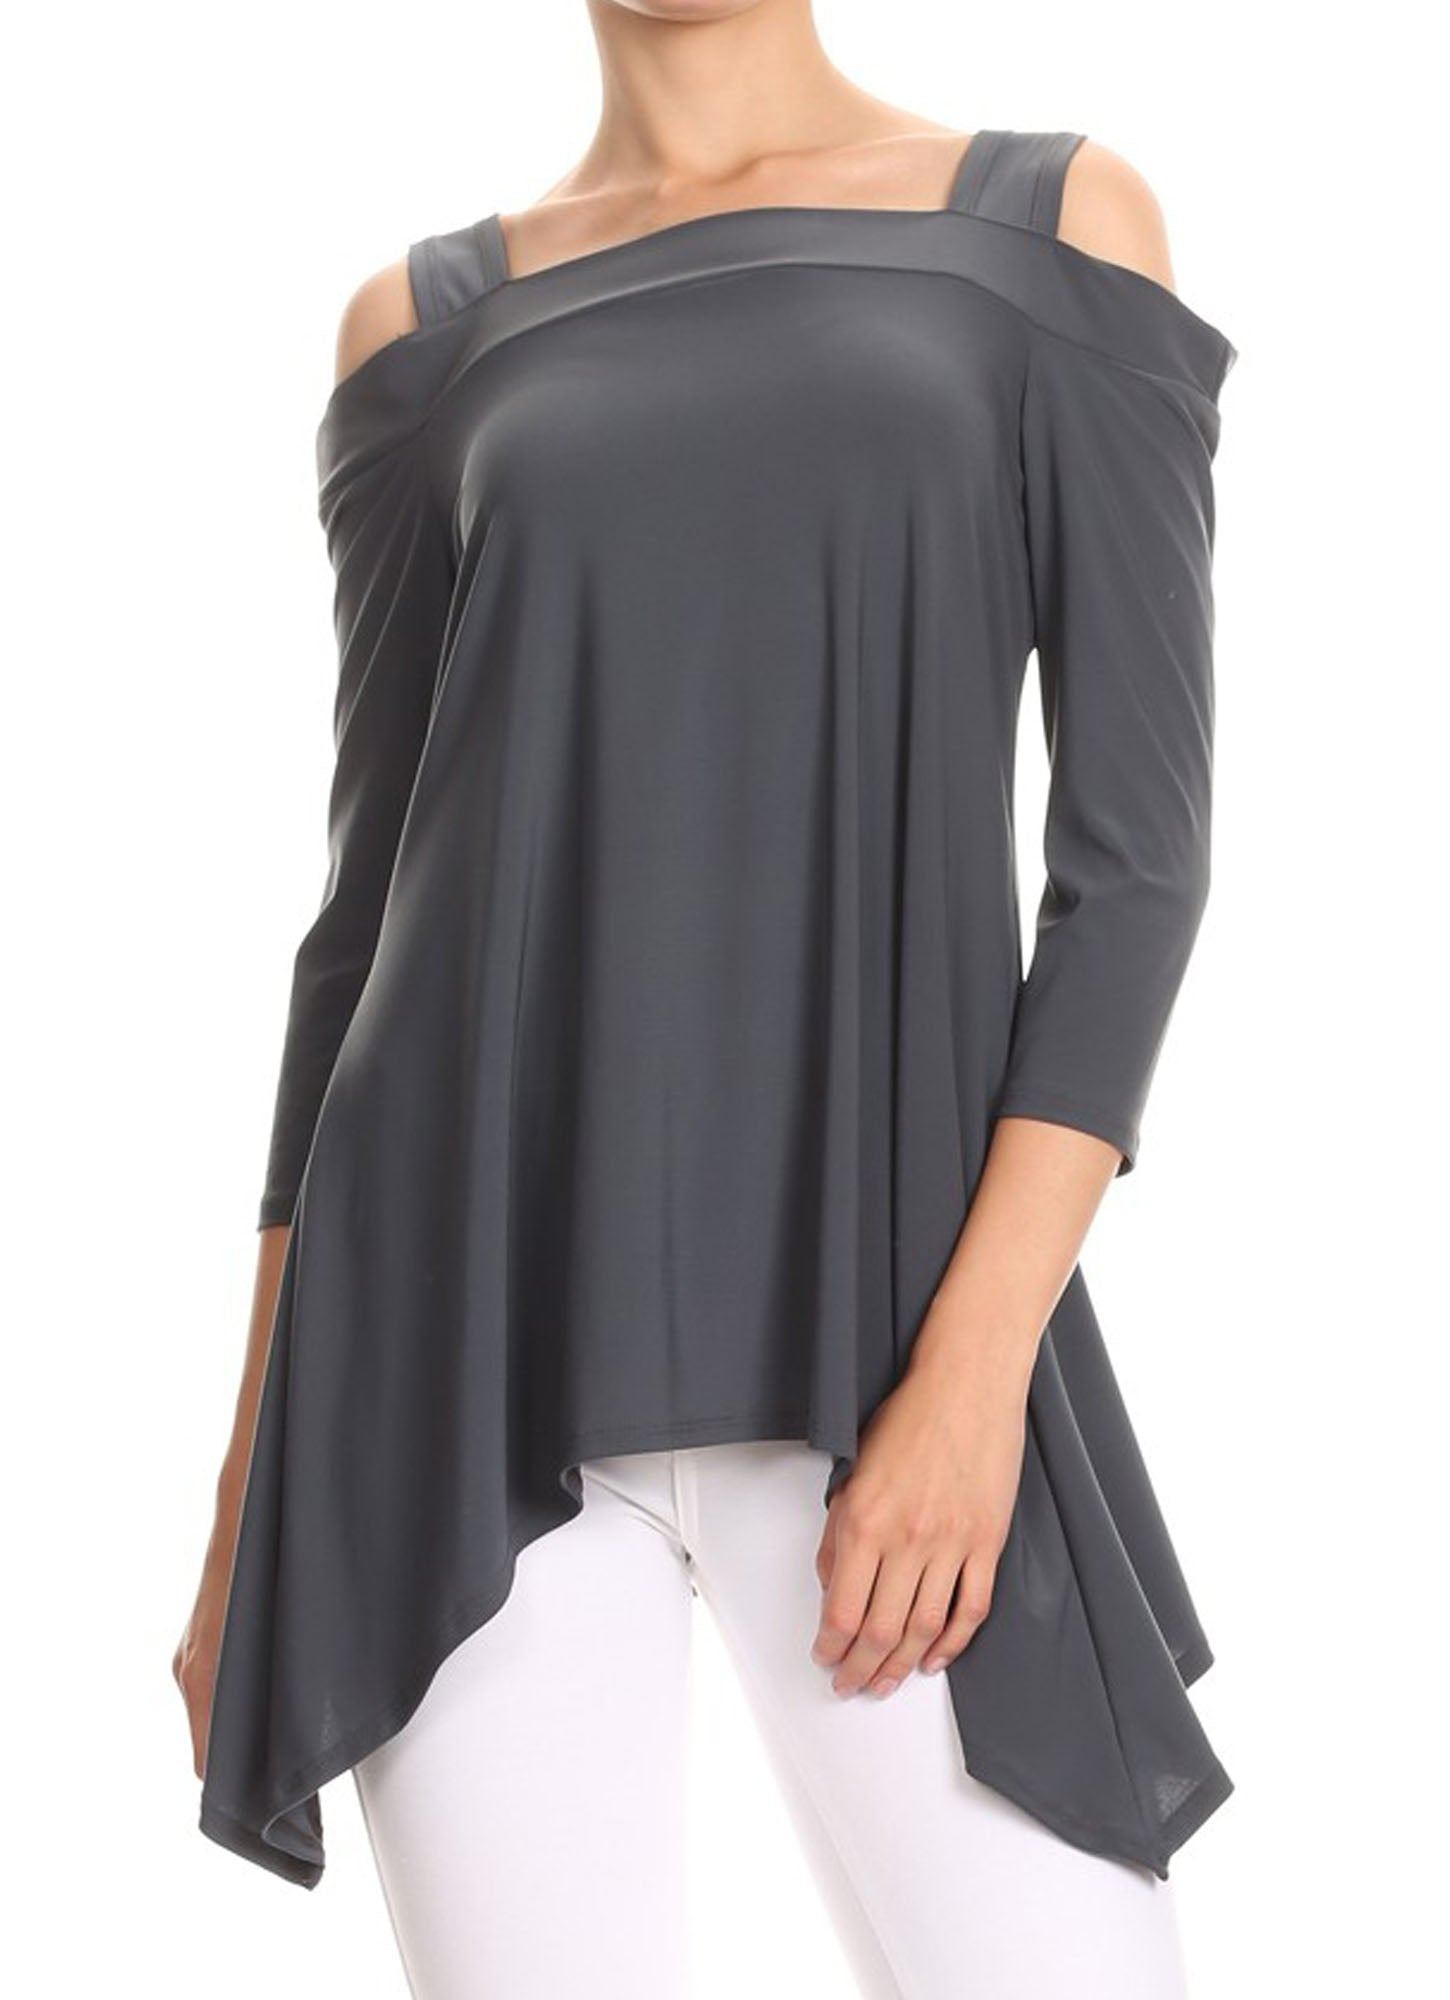 Avital Womens Cold Shoulder Asymmetrical Trapeze Shirt | Gray,Shirts,Avital - Discount Divas